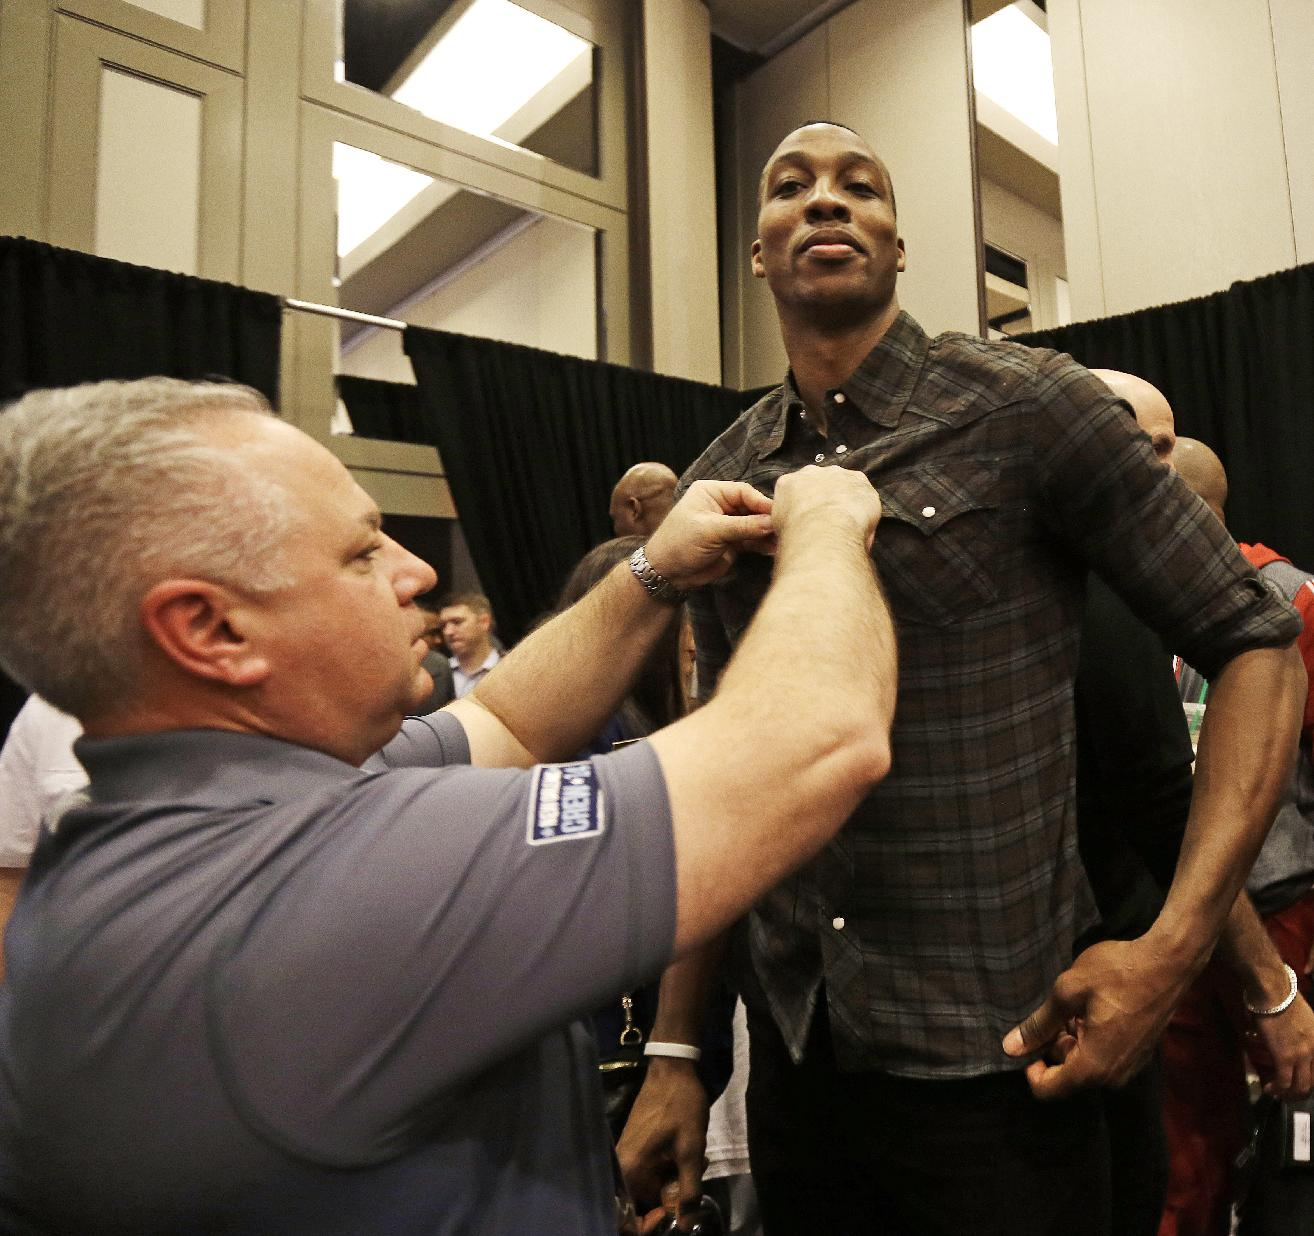 CORRECTS ID TO HOUSTON ROCKETS' DWIGHT HOWARD, NOT OKLAHOMA CITY THUNDER KEVIN DURANT - Houston Rockets' Dwight Howard has a microphone installed during the NBA All Star basketball news conference, Friday, Feb. 14, 2014, in New Orleans